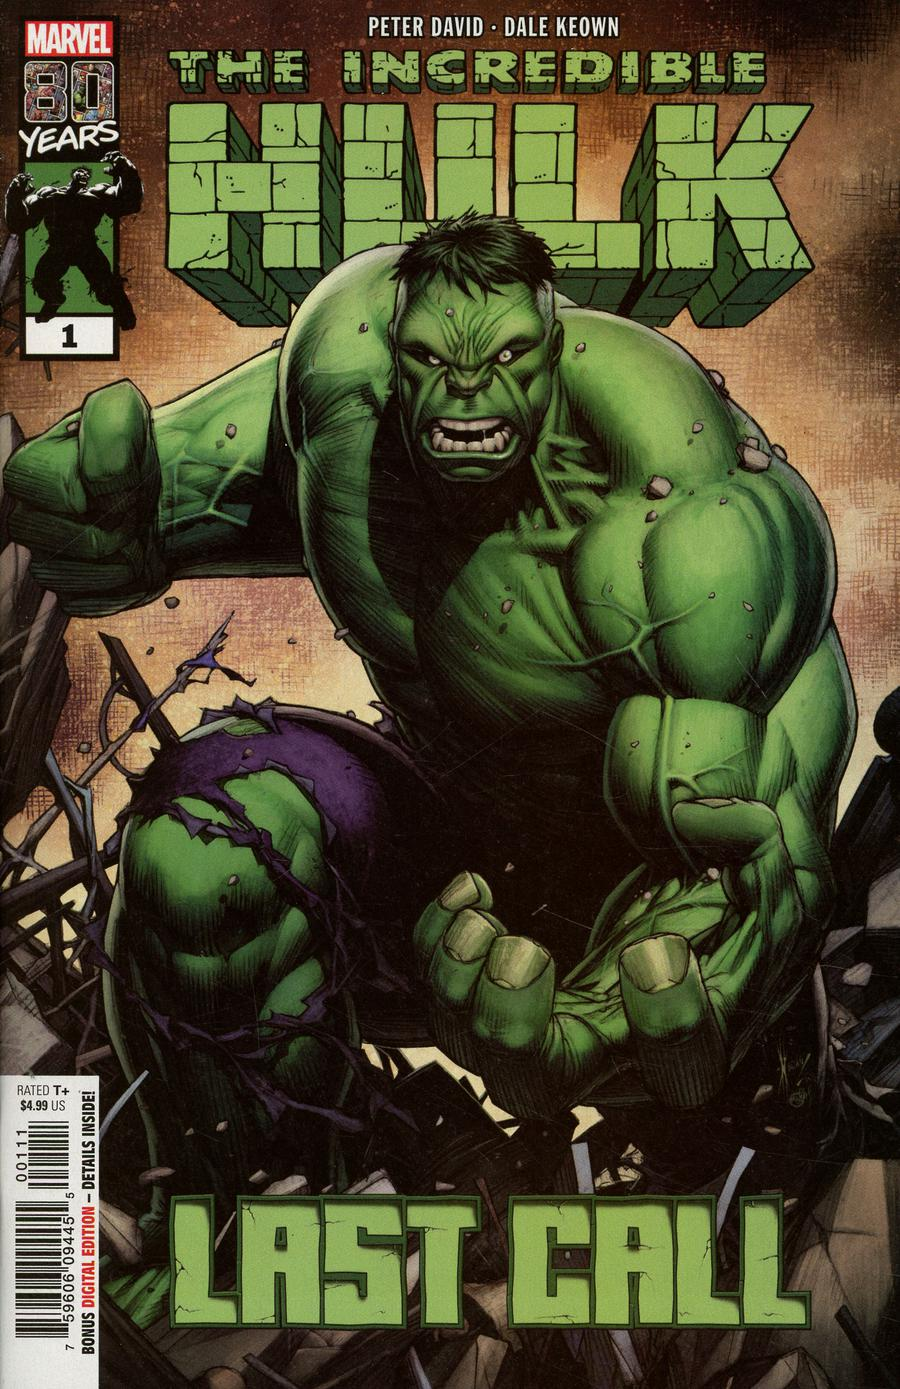 Incredible Hulk Last Call #1 Cover A 1st Ptg Regular Dale Keown Cover